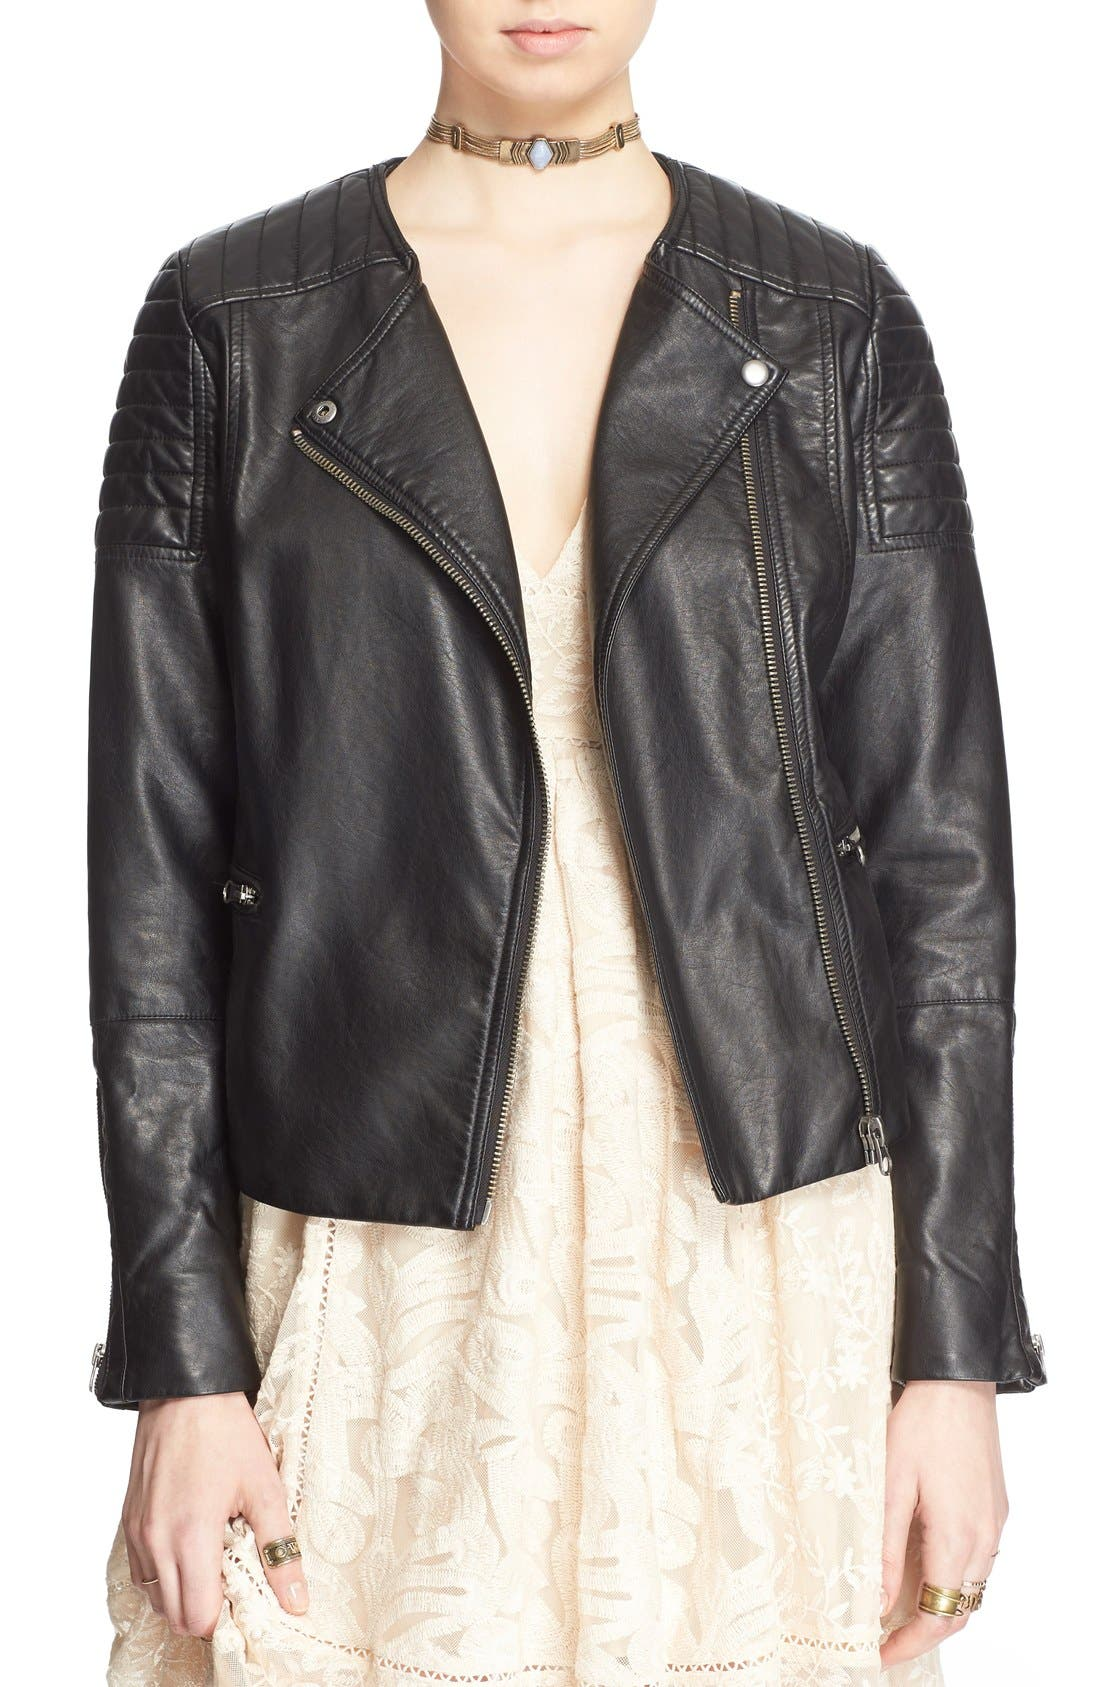 Alternate Image 1 Selected - Free People 'Exclusive' Faux Leather Jacket